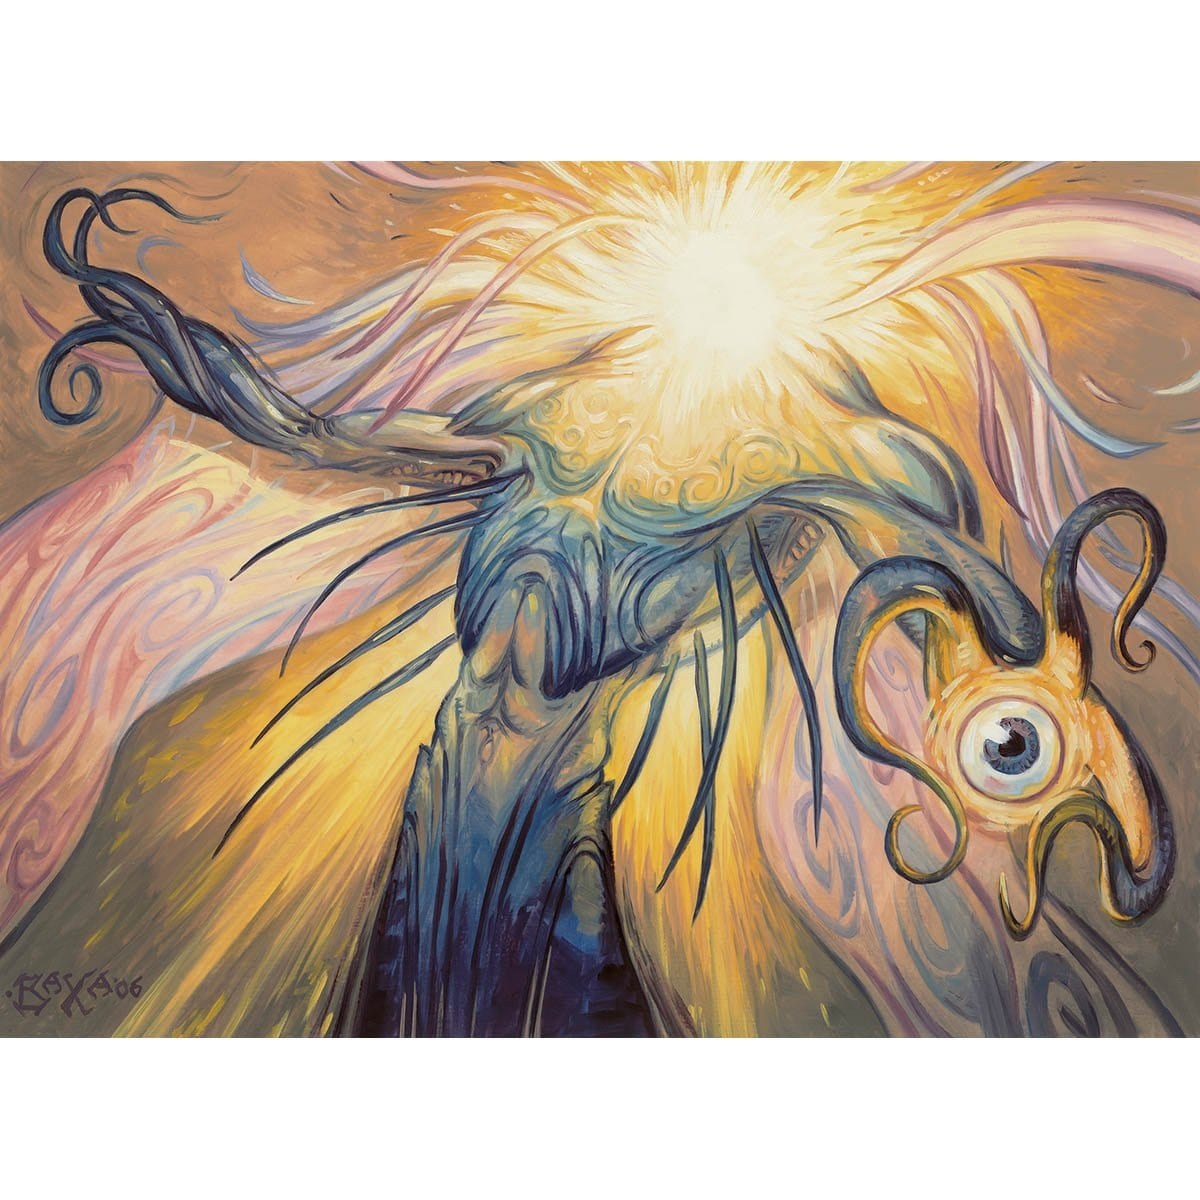 Aether Figment Print - Print - Original Magic Art - Accessories for Magic the Gathering and other card games